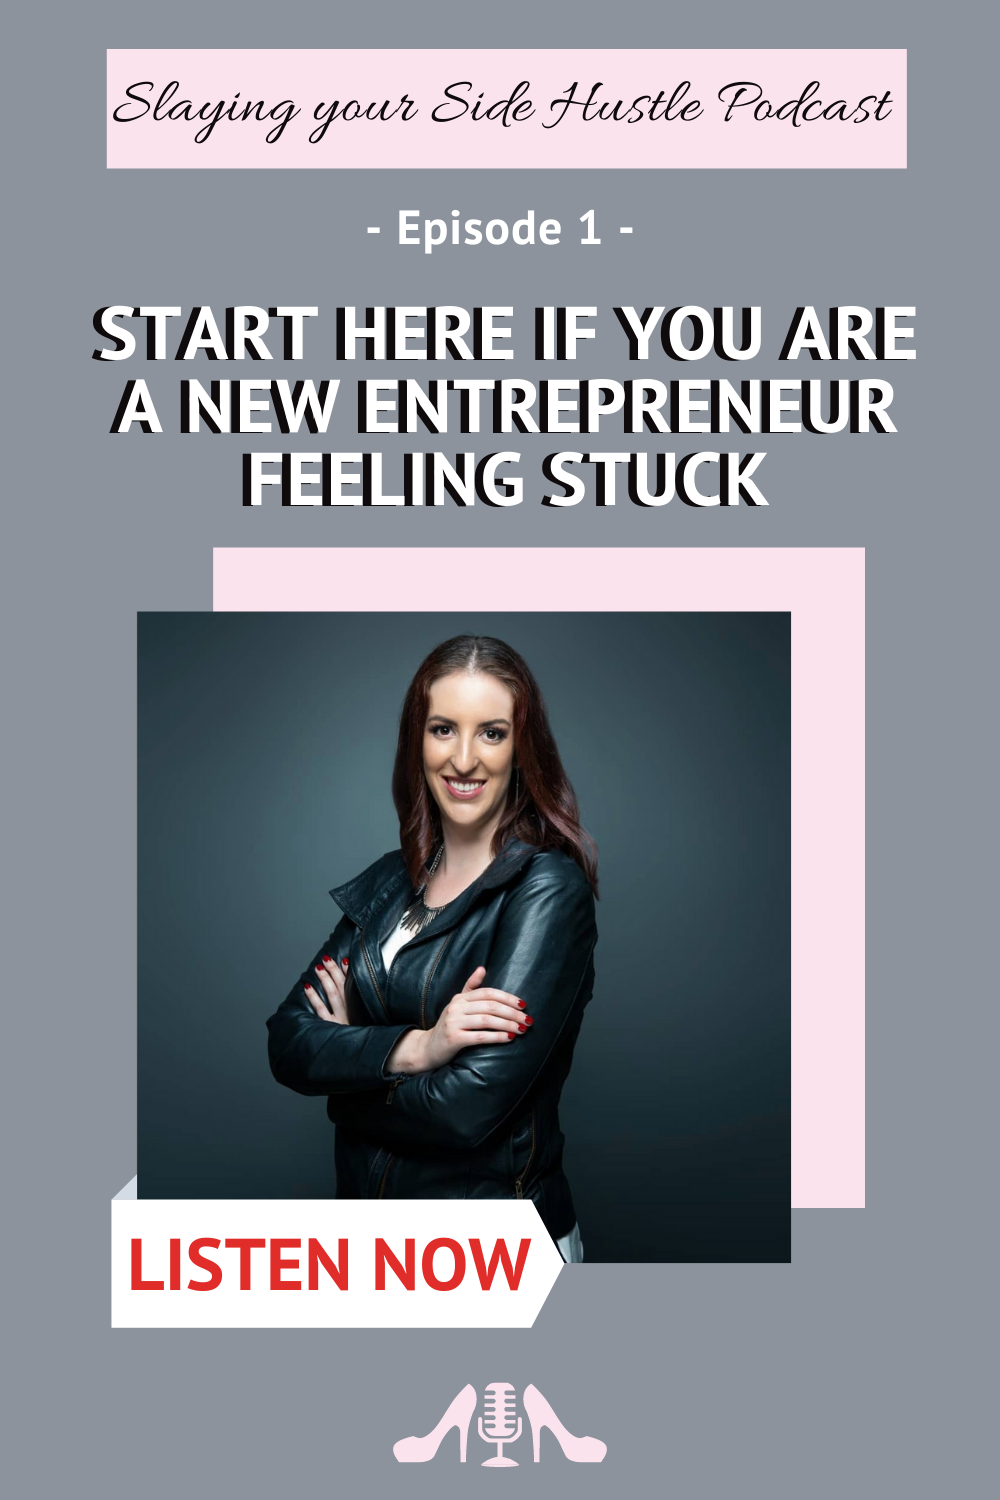 Start here if you are a new entrepreneur feeling stuck - Slaying your Side Hustle Podcast - Starting a business is a hard thing to do and you might need some help on what are the things to do and how to track your goals! Click to listen and get my best tips to start your own business! Hosted by Olivia Powell #businesstips #podcast #smallbusiness #startingabiz